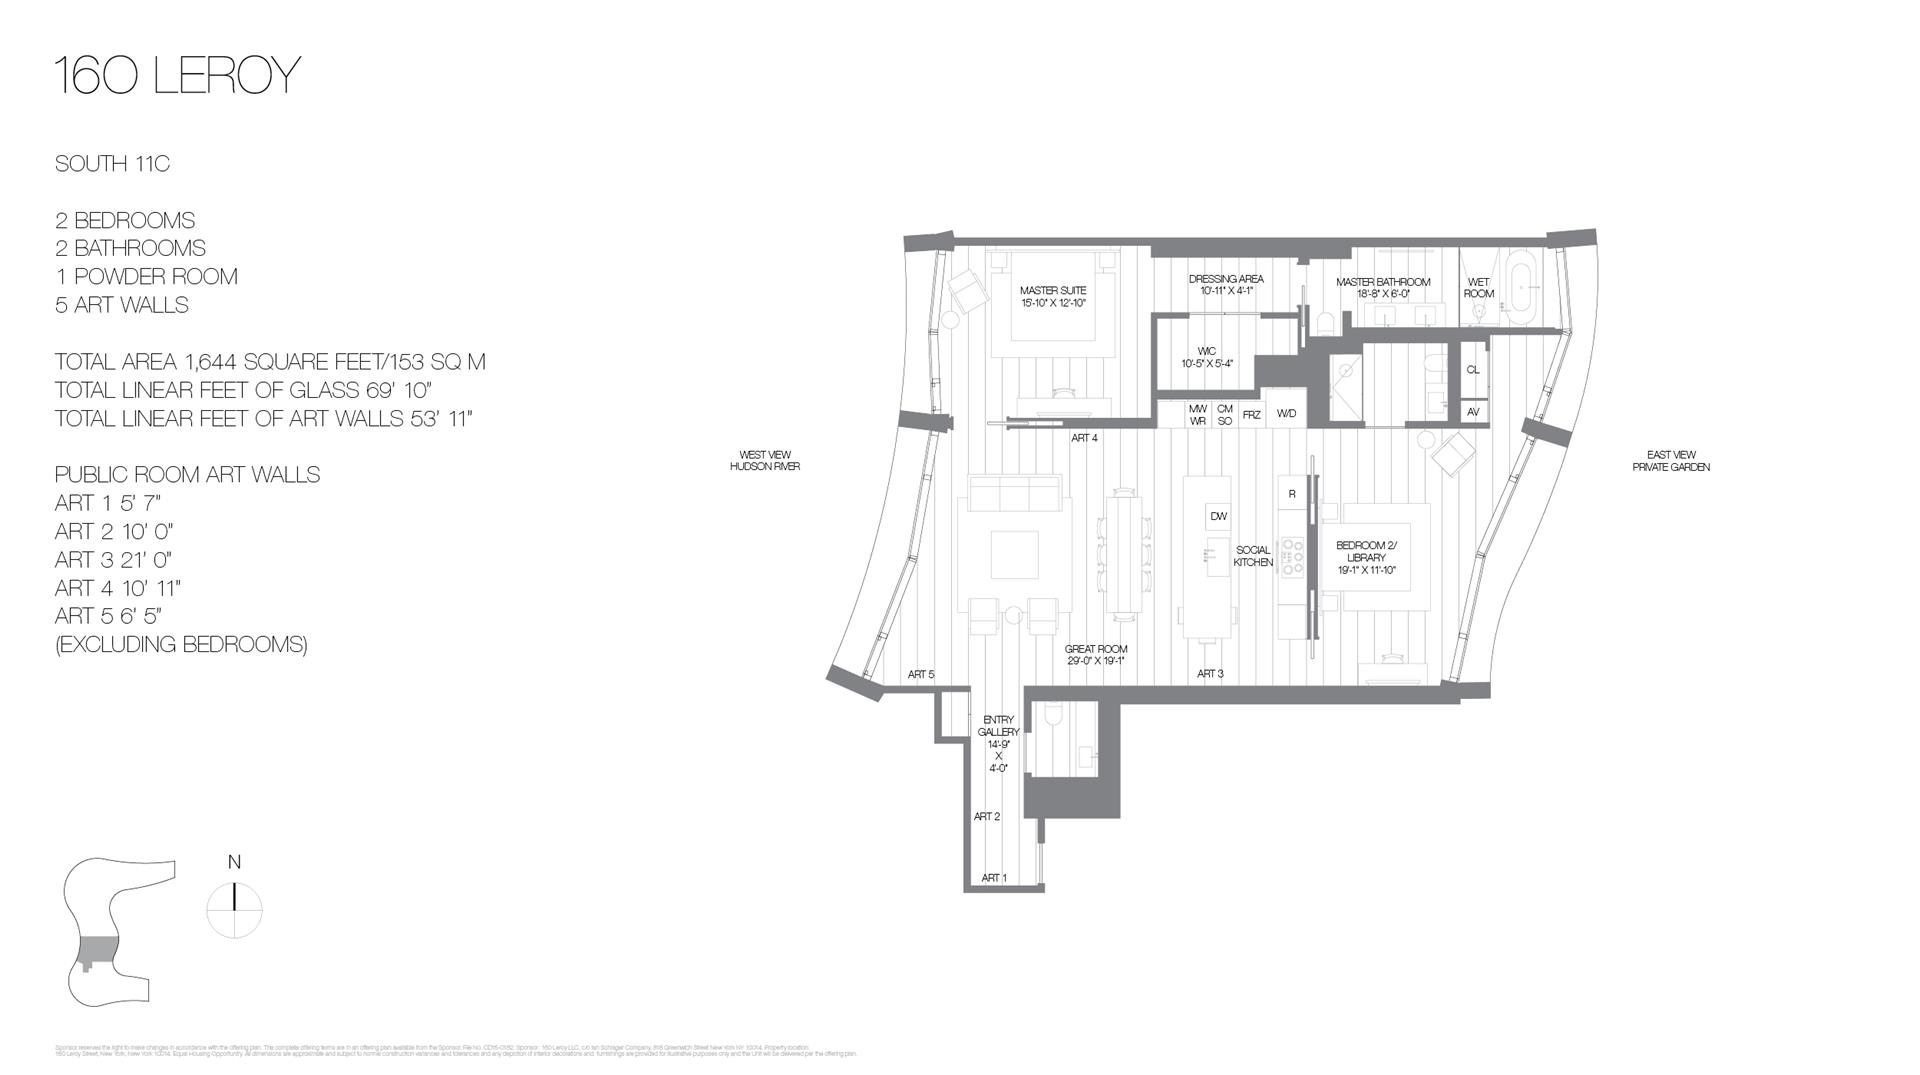 Floor plan of 160 Leroy St, SOUTH11C - West Village - Meatpacking District, New York